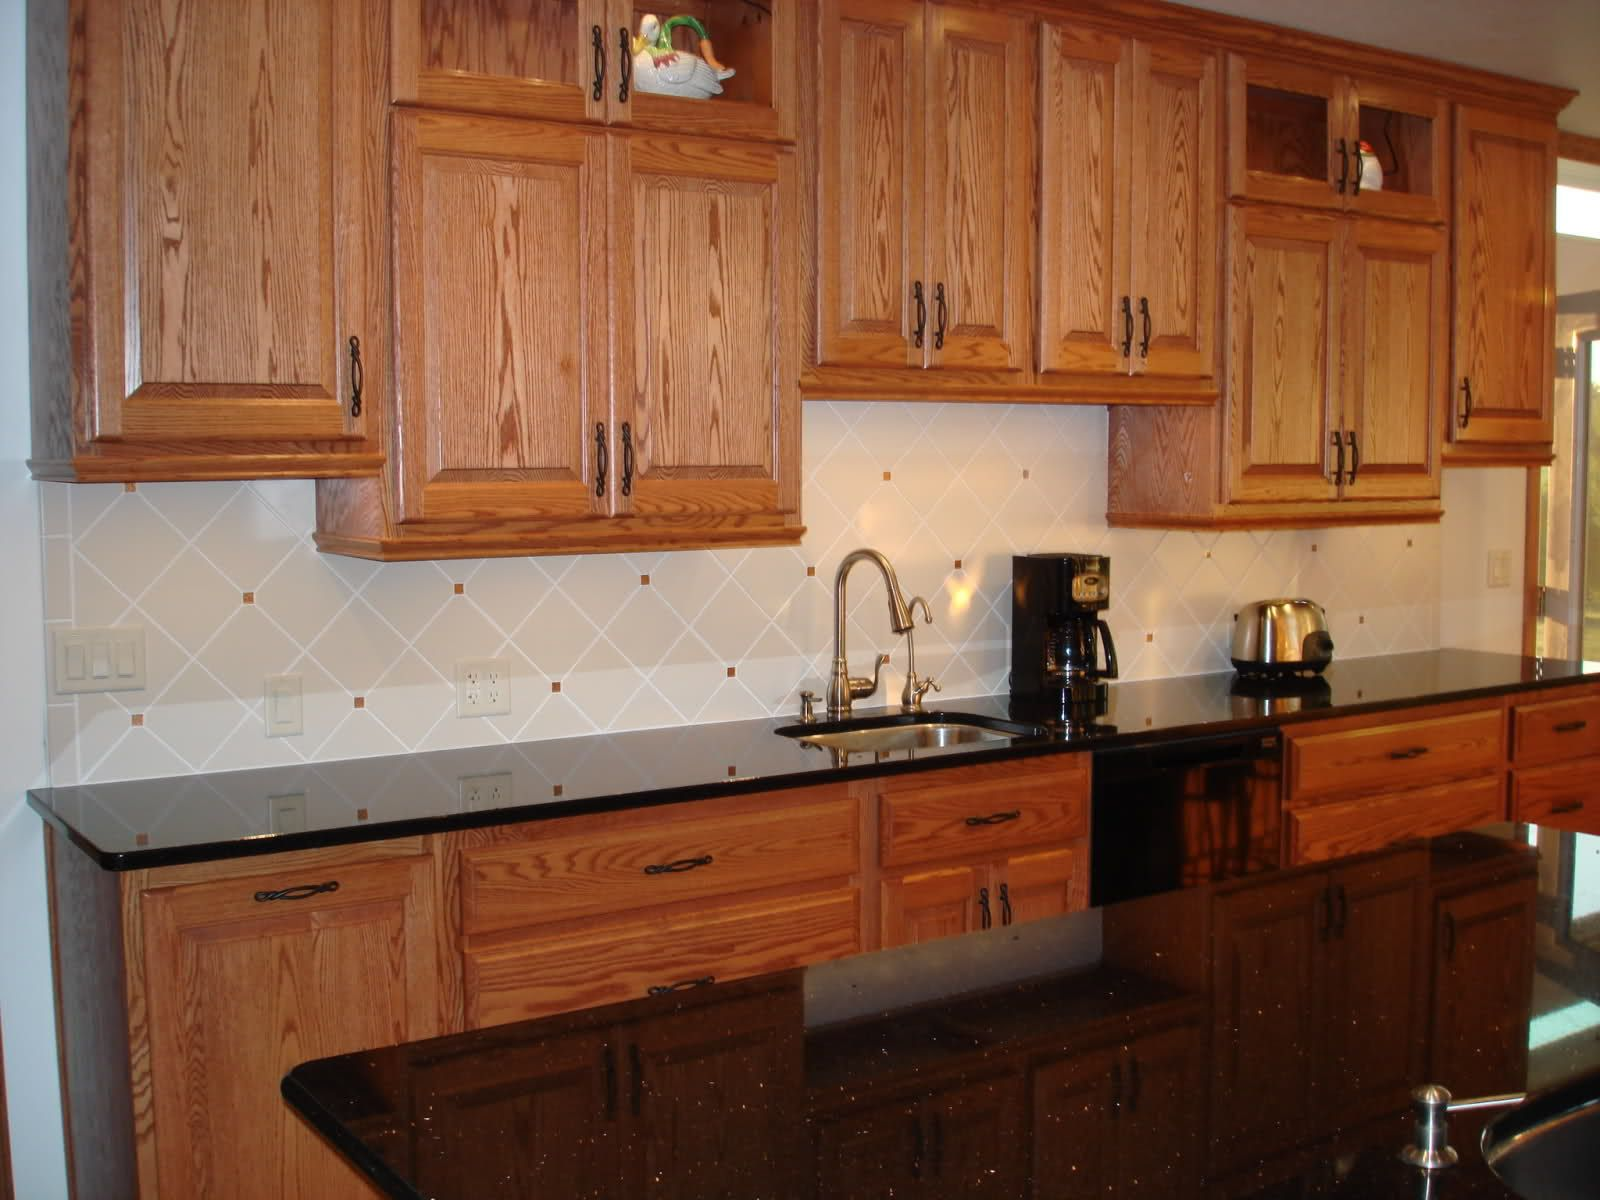 Kitchen Backsplash Cherry Cabinets White Counter kitchen cabinets backsplash ~ voluptuo